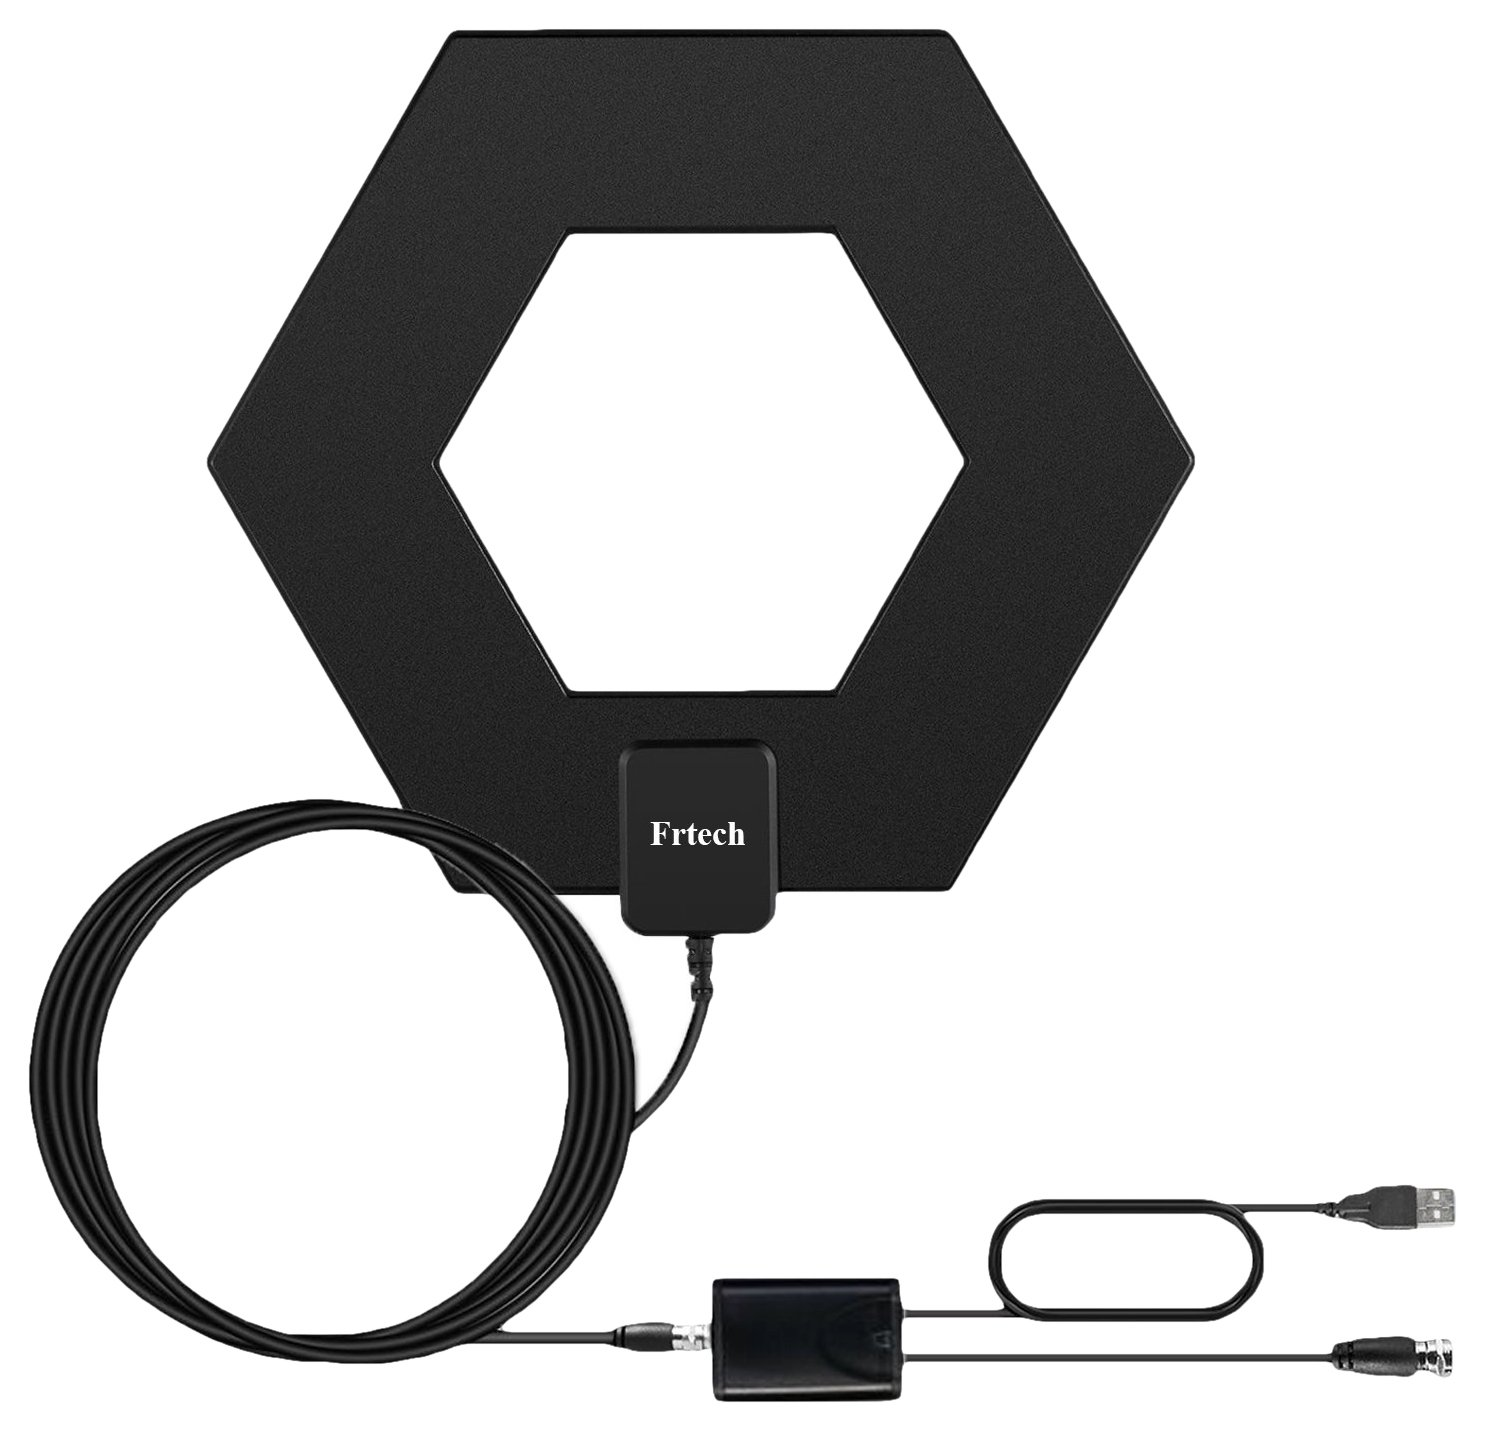 Frtech Hd TV Antenna 50+ Mile Range With Detachable Amplifier Signal Booster